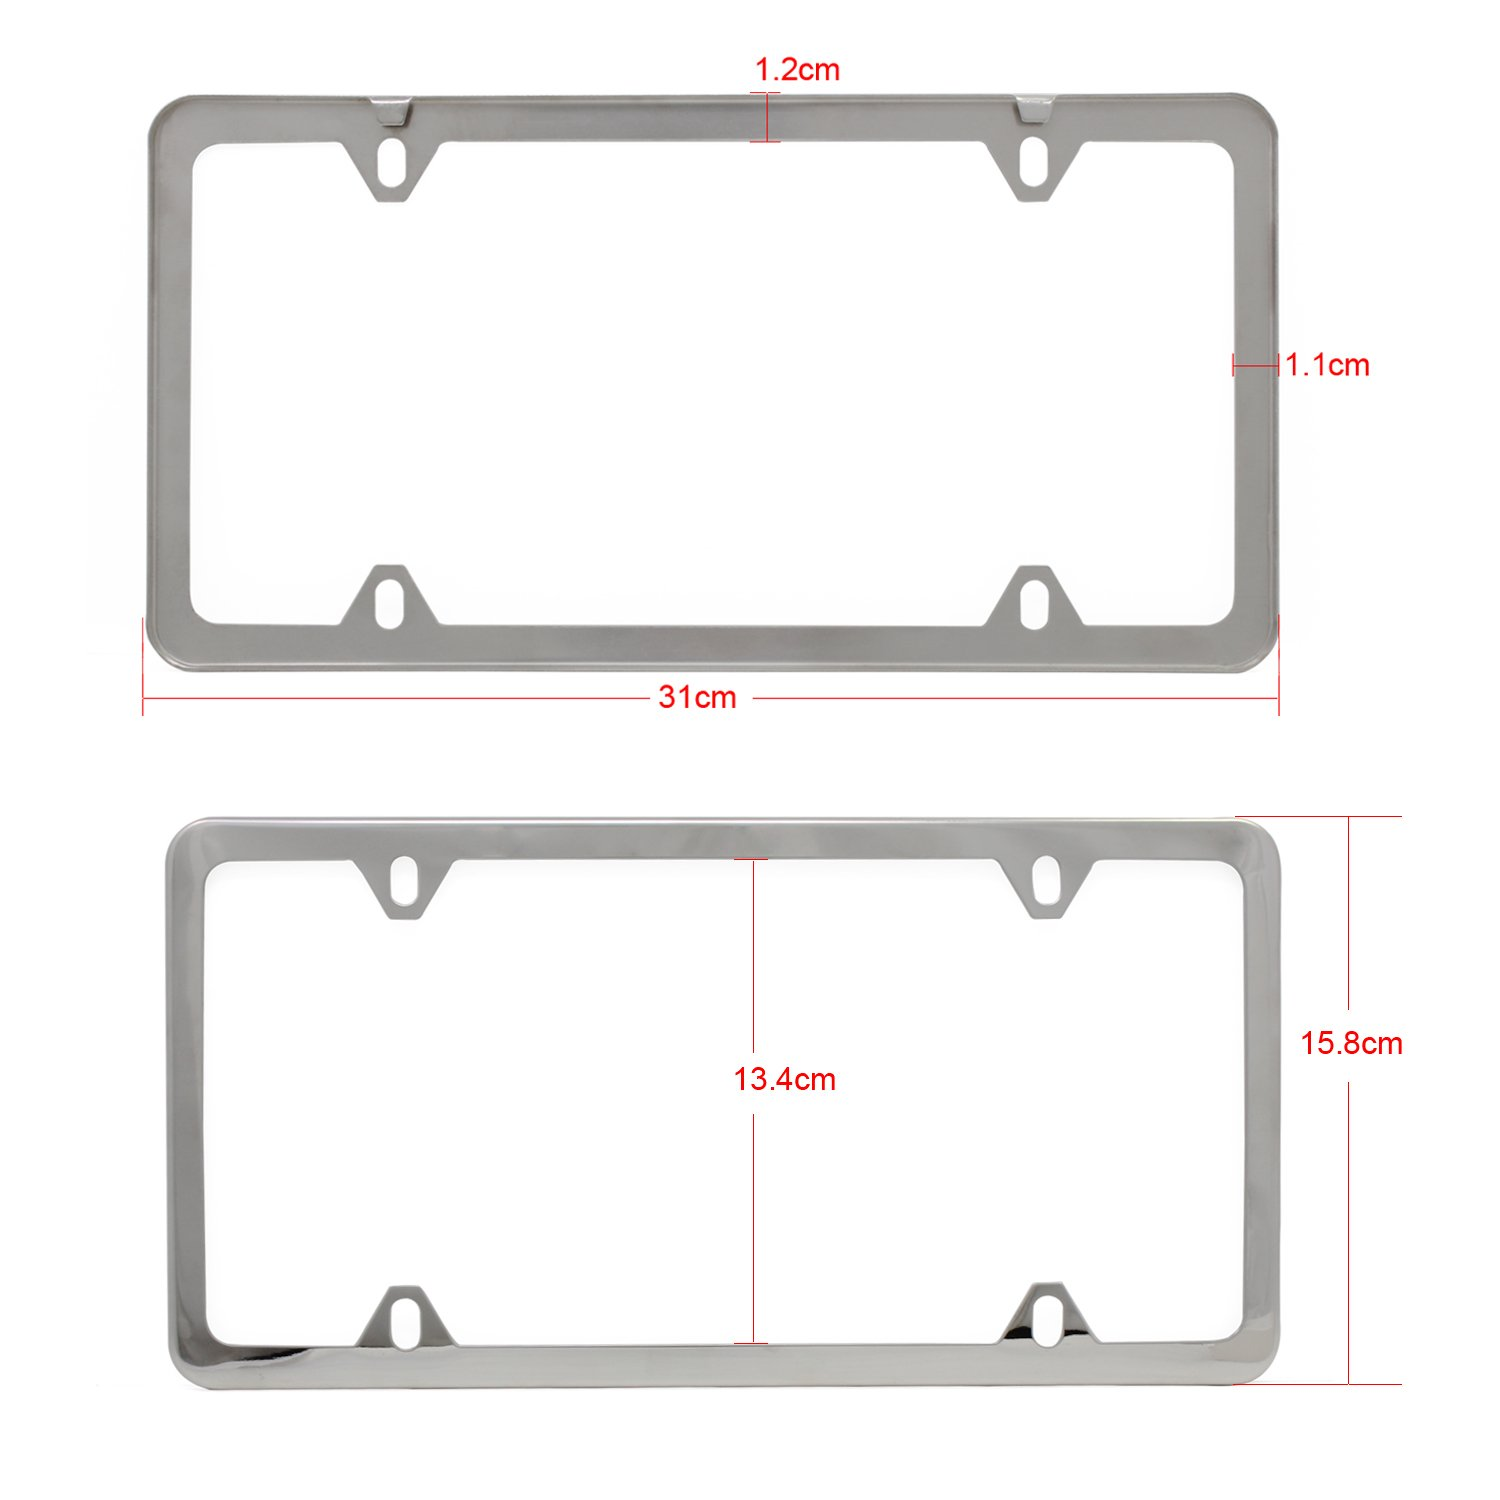 Ocrtech 4-Hole Silver OCR Stainless Steel Car License Plate Frame Car License Plate Cover with Screw Caps 2PCS